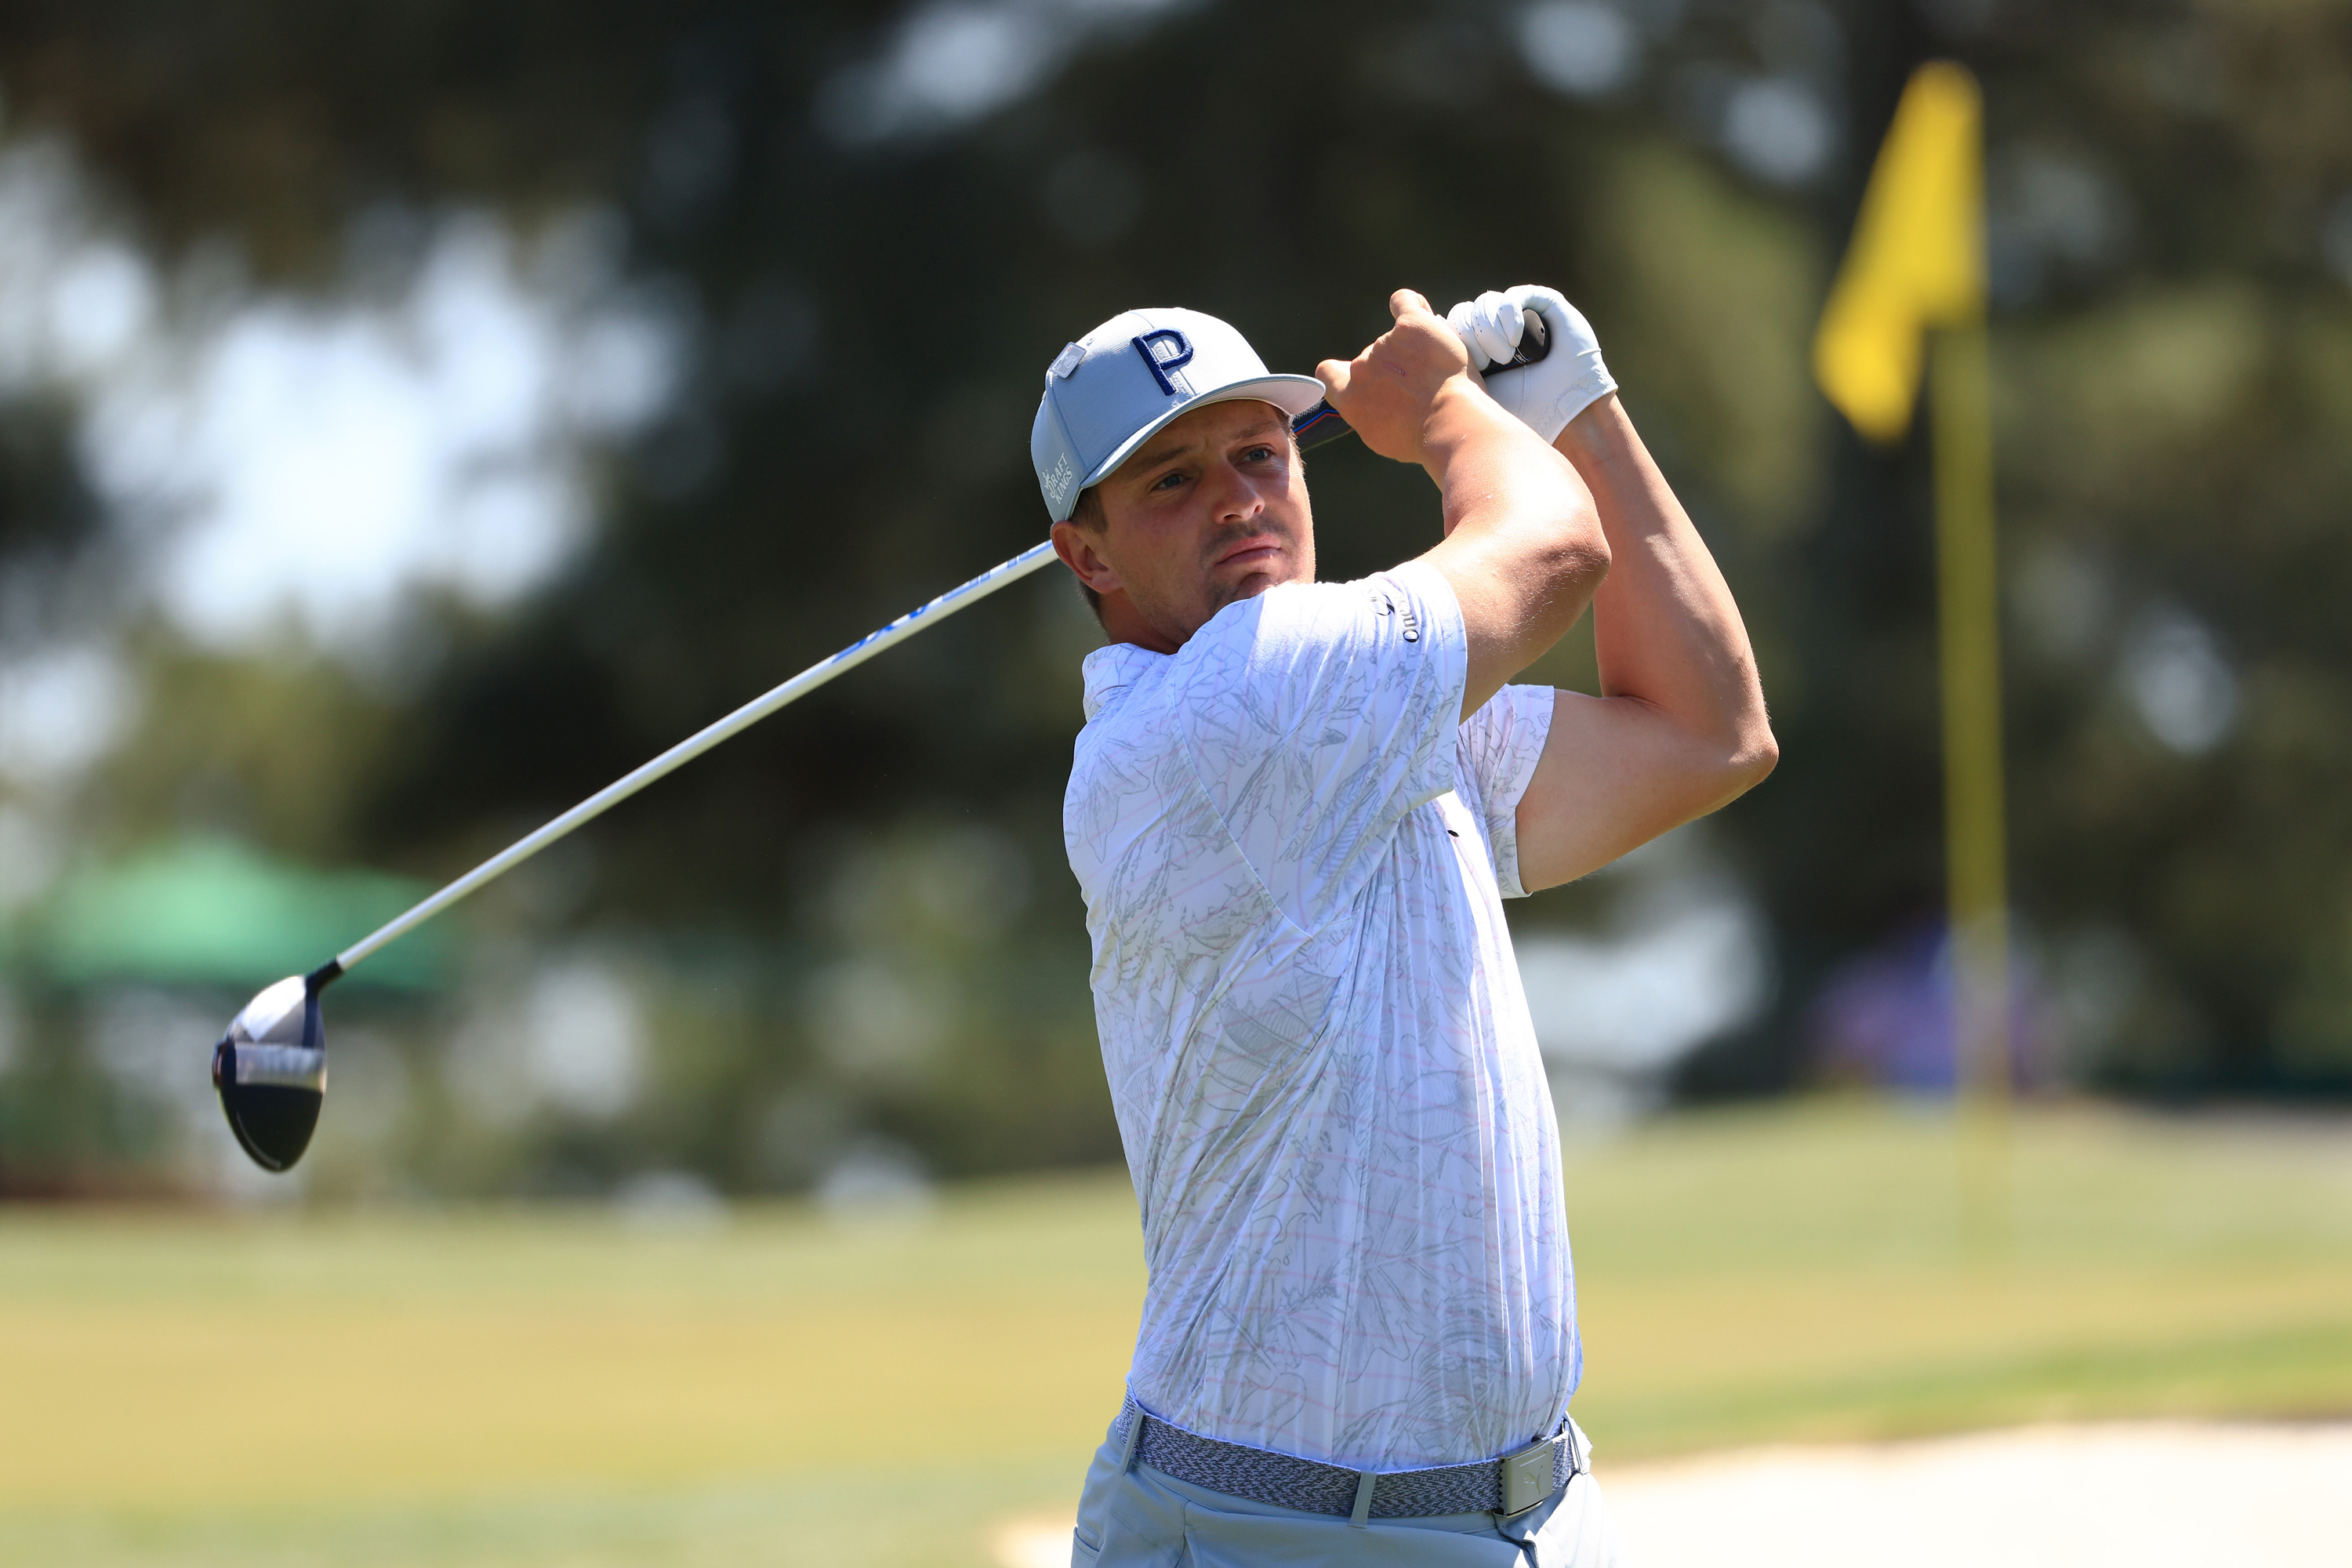 Bryson DeChambeau optimistic new driver will help his chances at Masters